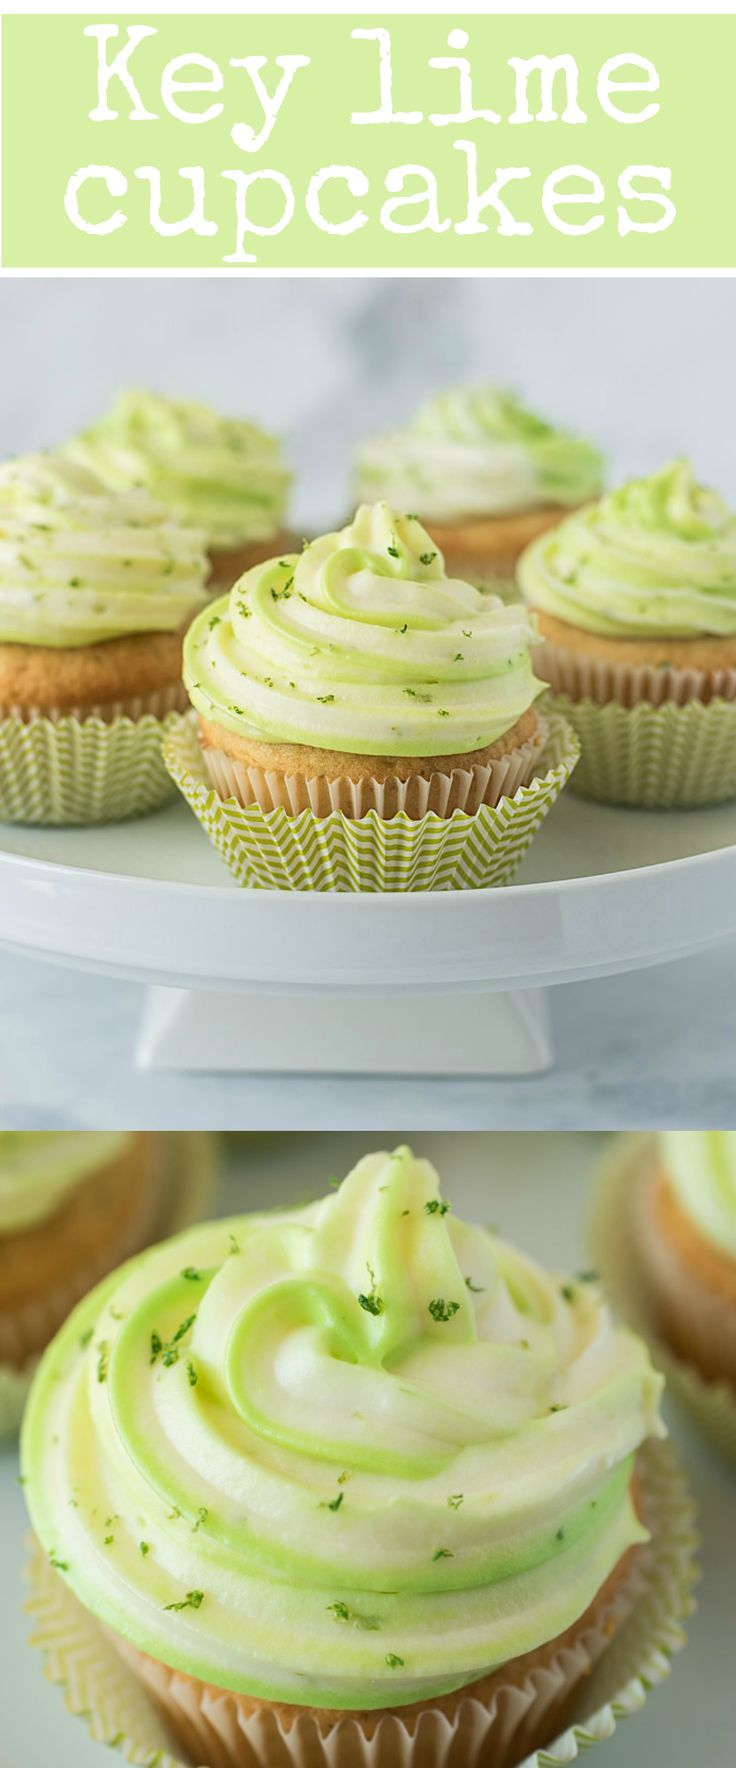 Key lime cupcakes taste like key lime pie. With key lime juice and zest in the light and fluffy cupcakes and cream cheese frosting.